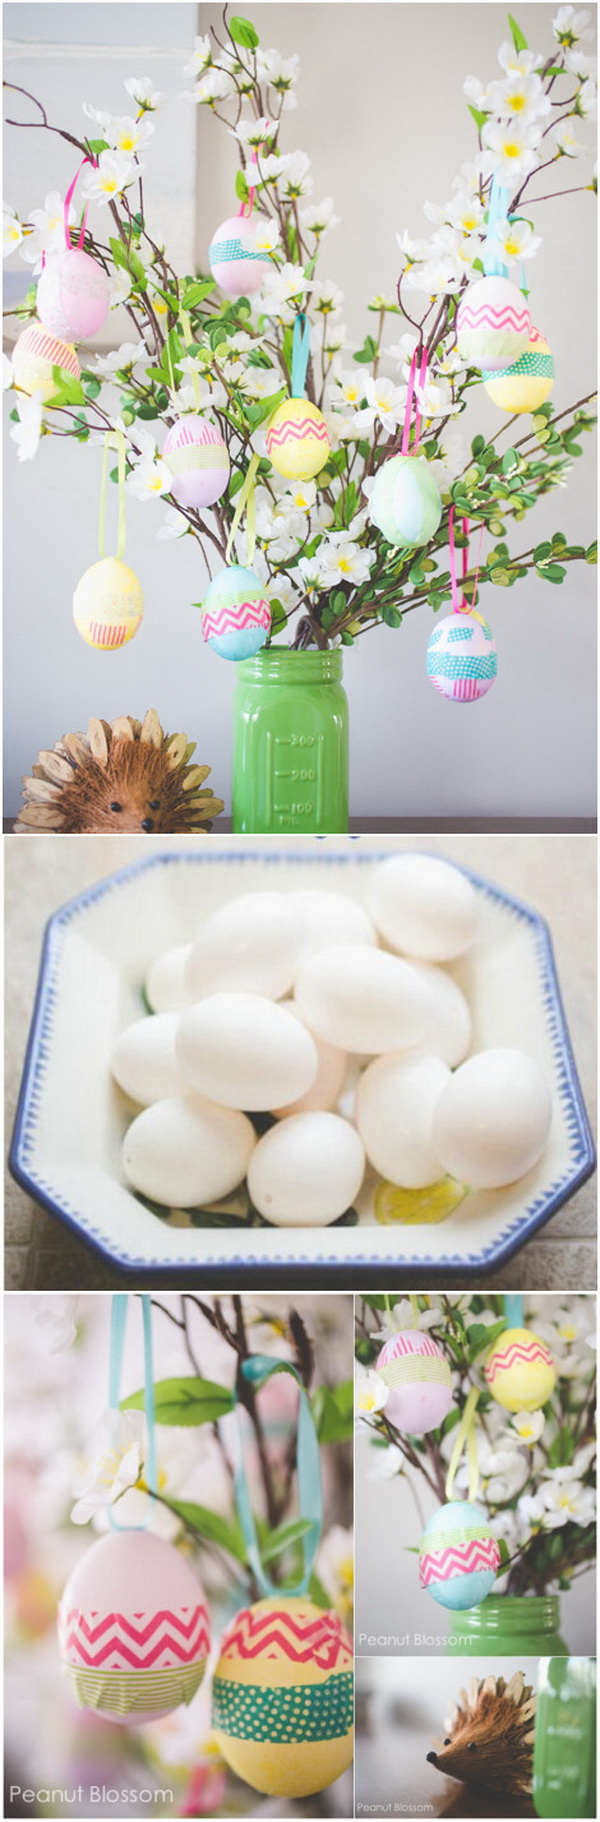 DIY Easter Decoration Ideas: Easter Egg Tree.